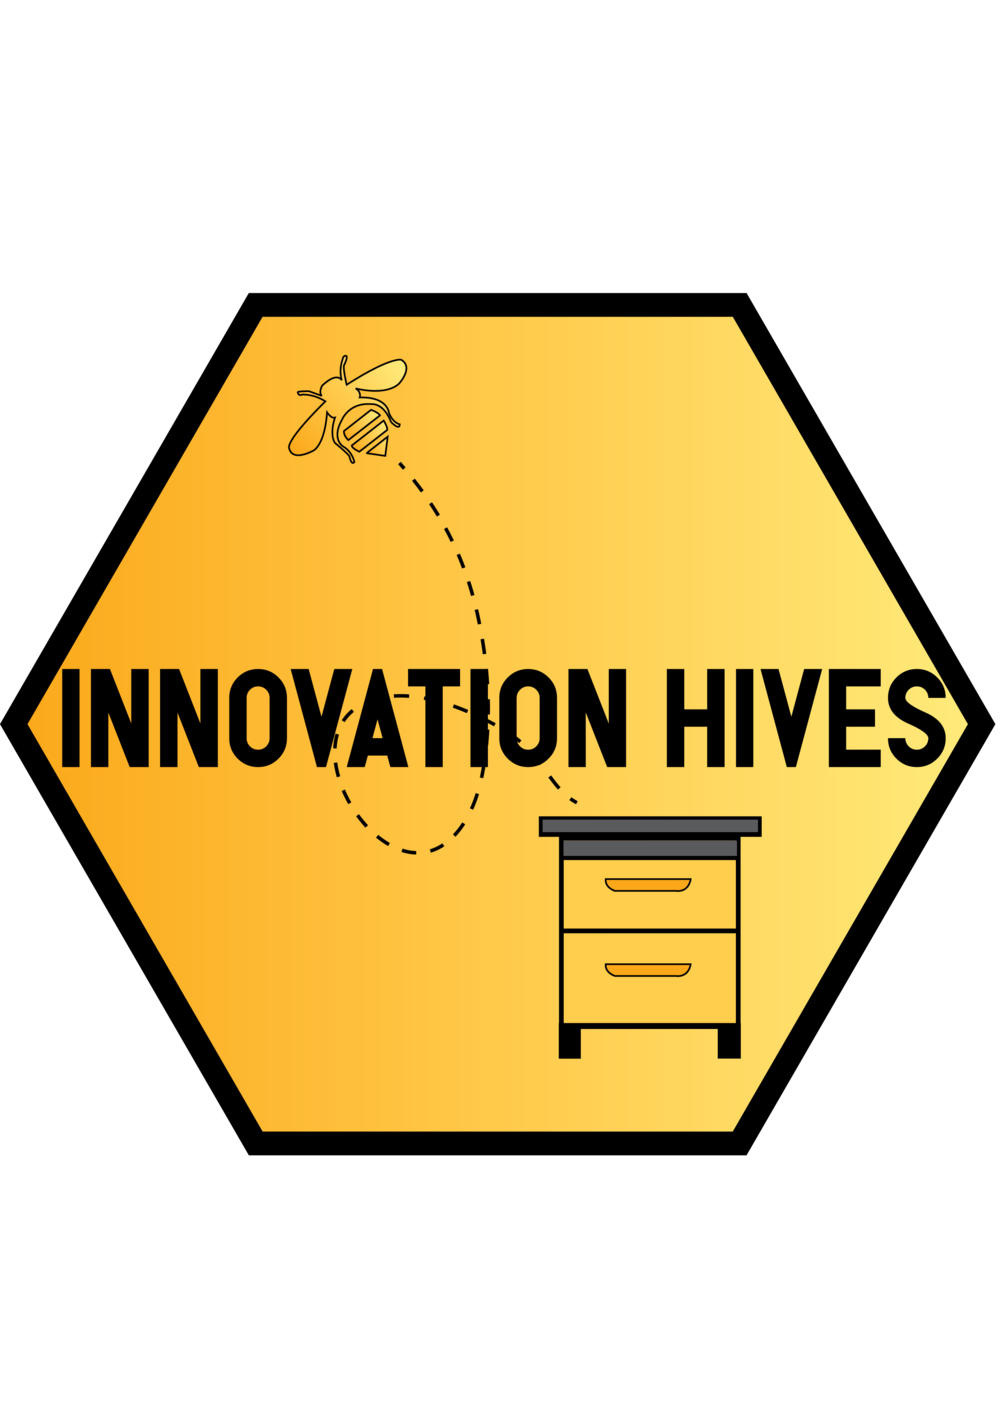 - Innovation Hives is a local Dunedin business run by Peter & Karen Dodds, specialising in their own brand of bee hives. Each hive has been hand crafted to ensure a long lasting quality product.Innovation Hives was placed 2nd in the 2018 Southern Rural Life Farm Innovation Awards at the Southern Field Days in Waimumu.